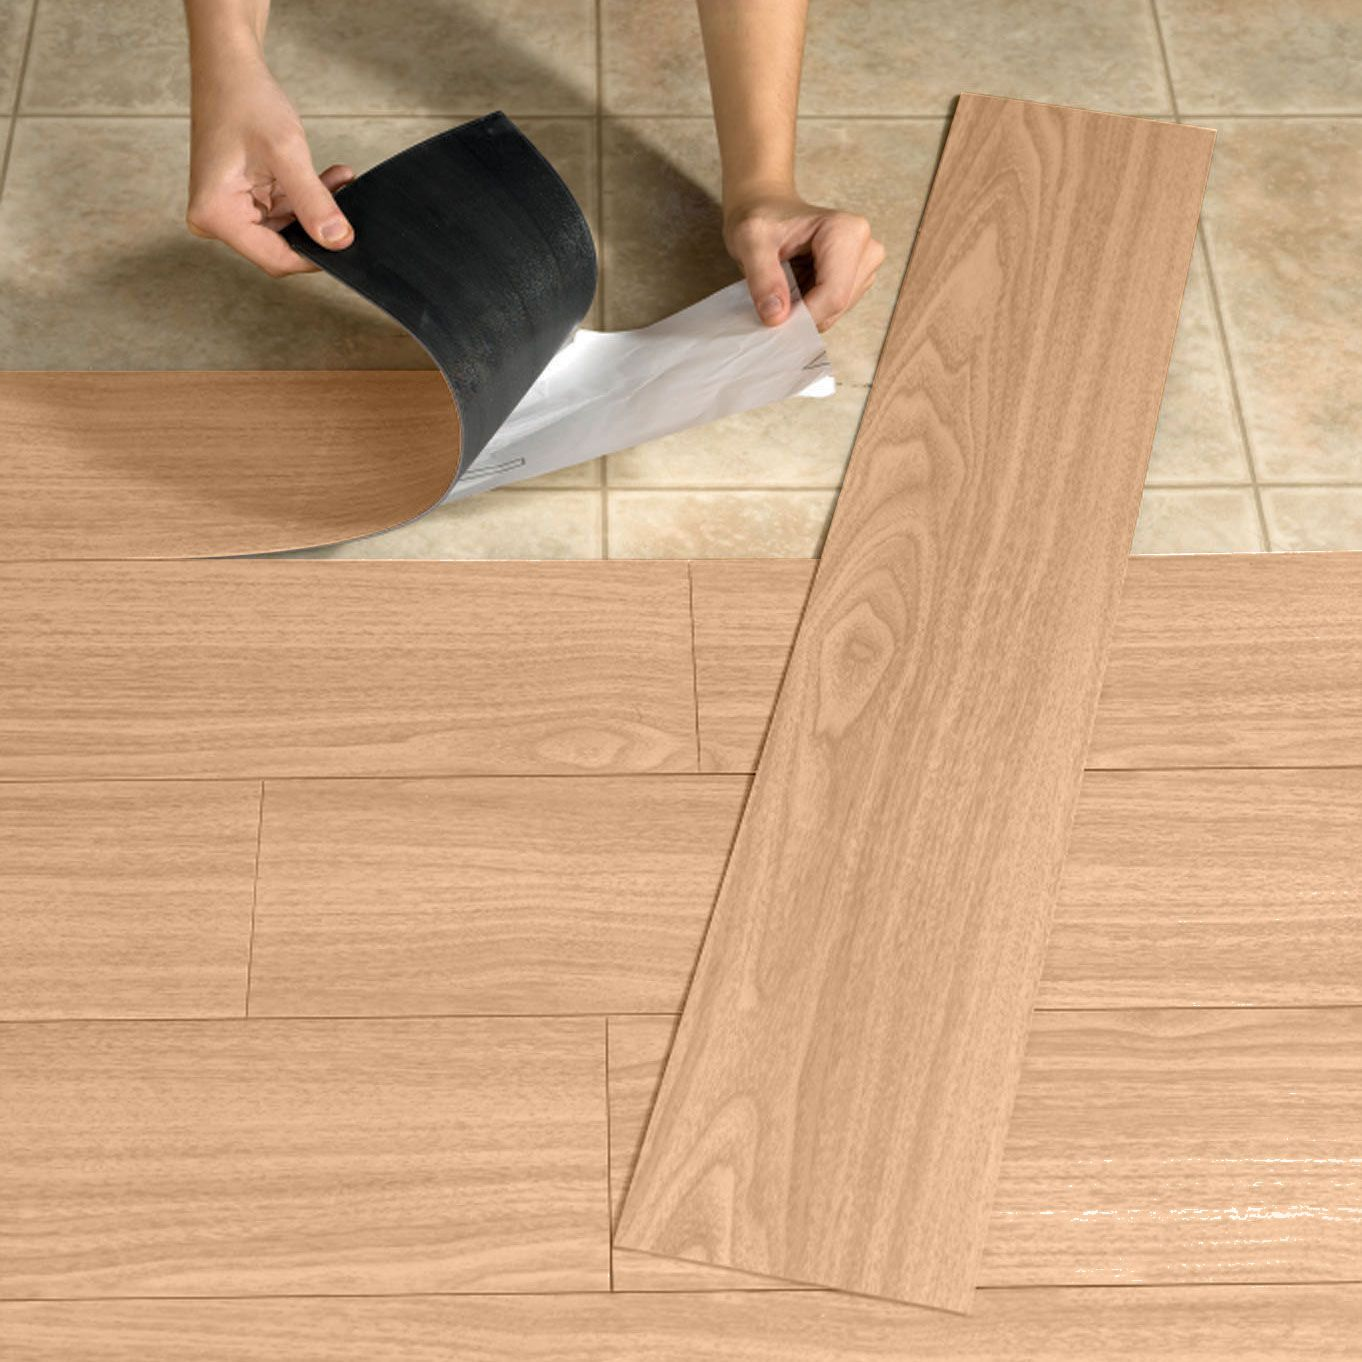 Peel And Stick Wood Look Plank Flooring Peel And Stick Wood Peel And Stick Floor Plank Flooring